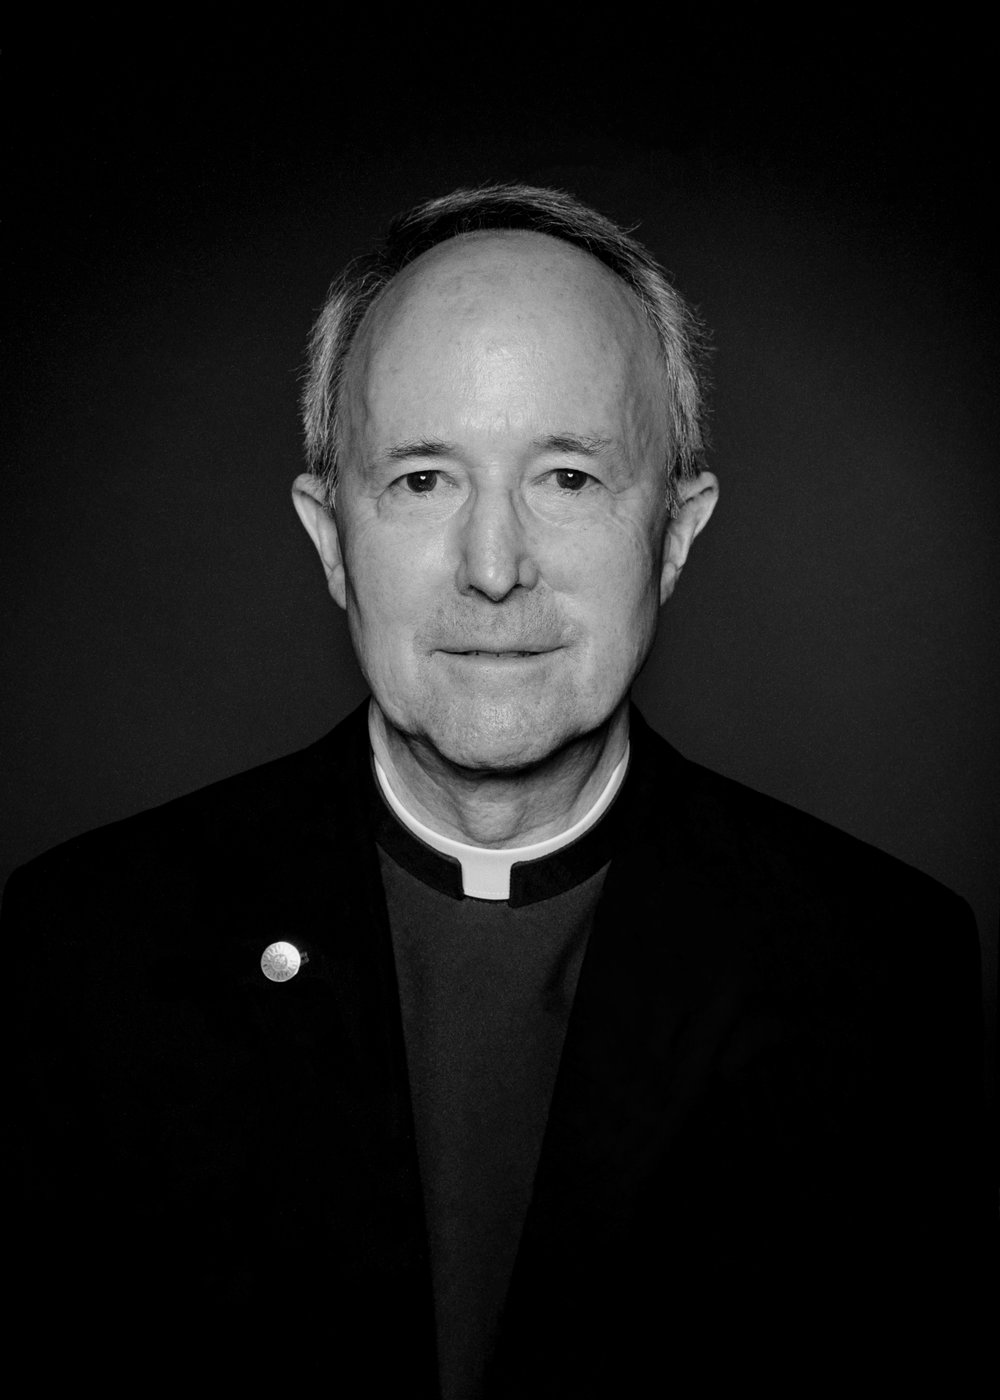 Inside the Film: Fr. Roche, S.J.